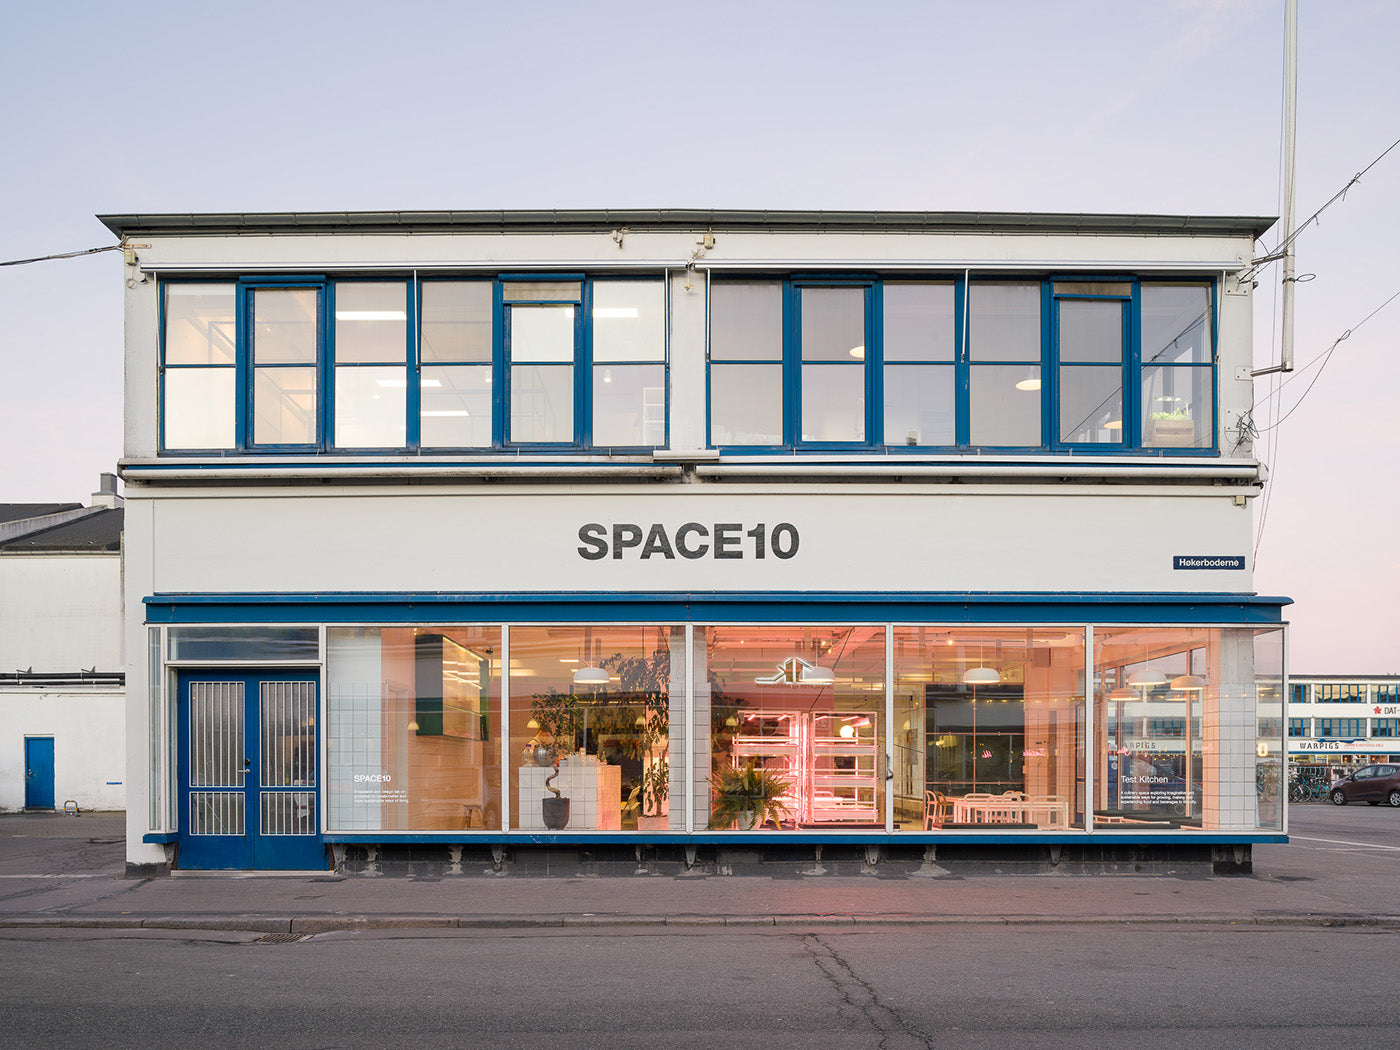 The facade of Space10